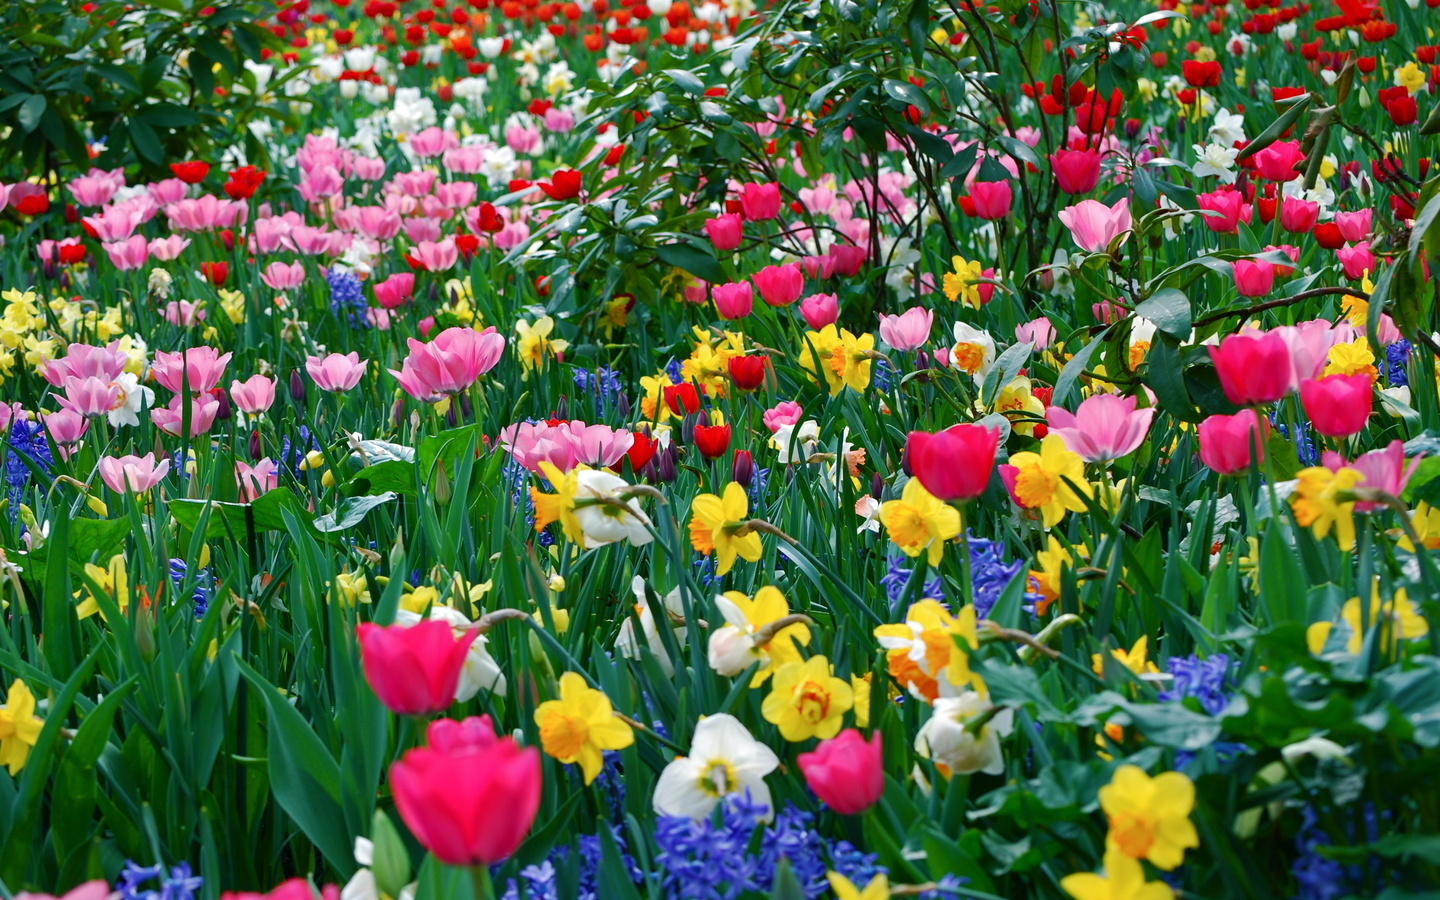 many spring spring wallpaper flowers photo 1440x900 flowers 1440x900